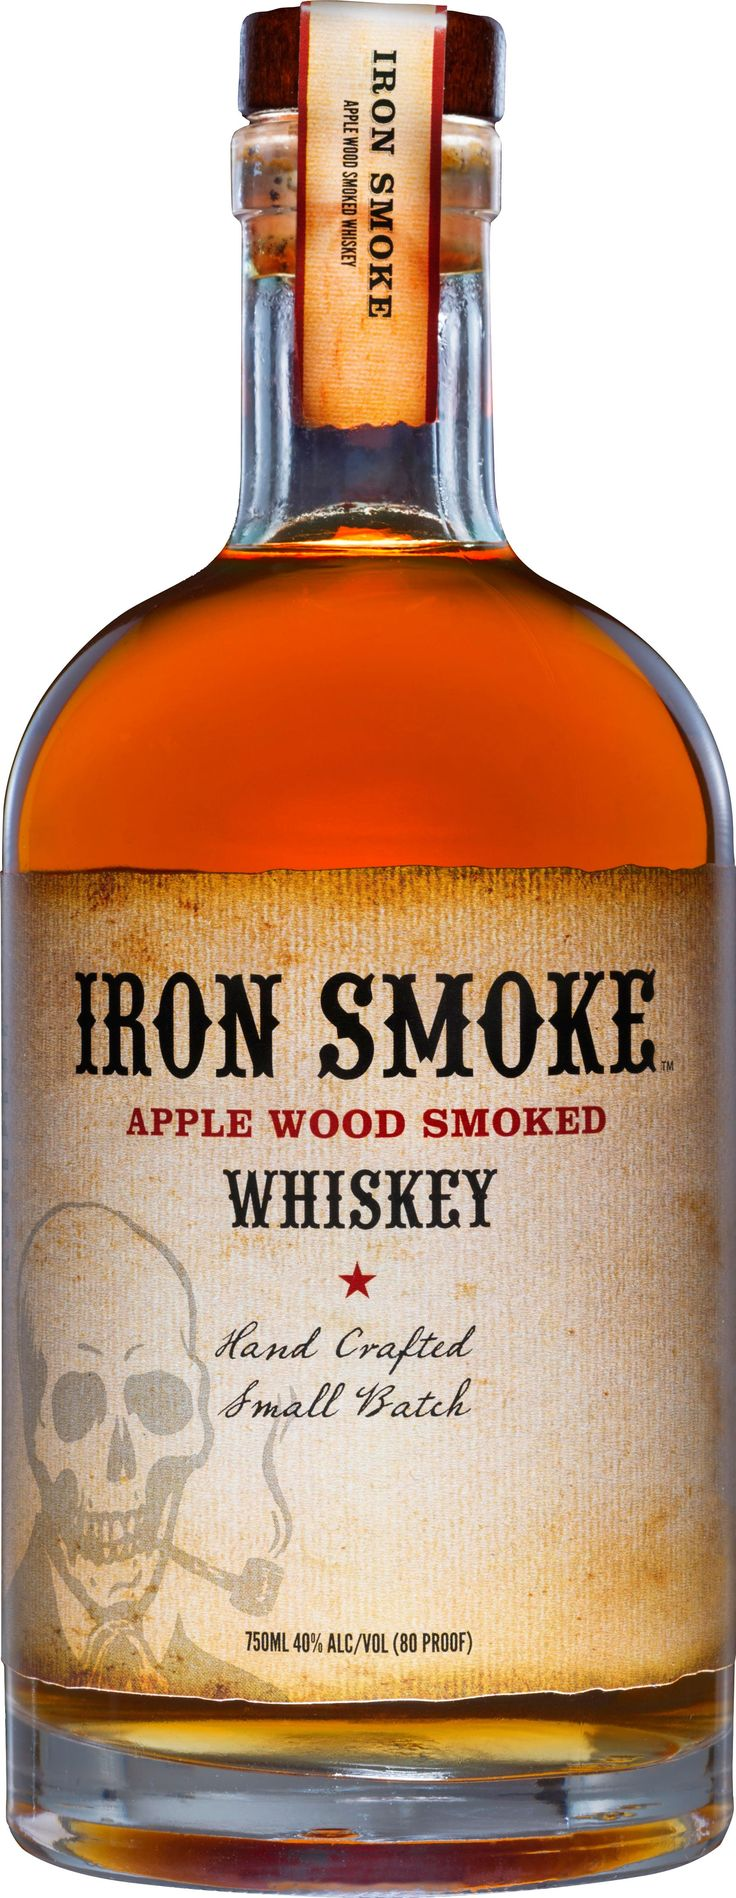 "Made from a ""bourbon"" mash bill that contains corn, rye, wheat and smoked barley sourced from American farms, Iron Smoke Whiskey is distilled and aged by Tommy Brunett at his distillery in Seneca Falls, NY. Before the grains are milled and mashed, Tommy and his team smoke them using applewood, which lends a pleasant, smoky yet sweet characteristic to the whiskey"